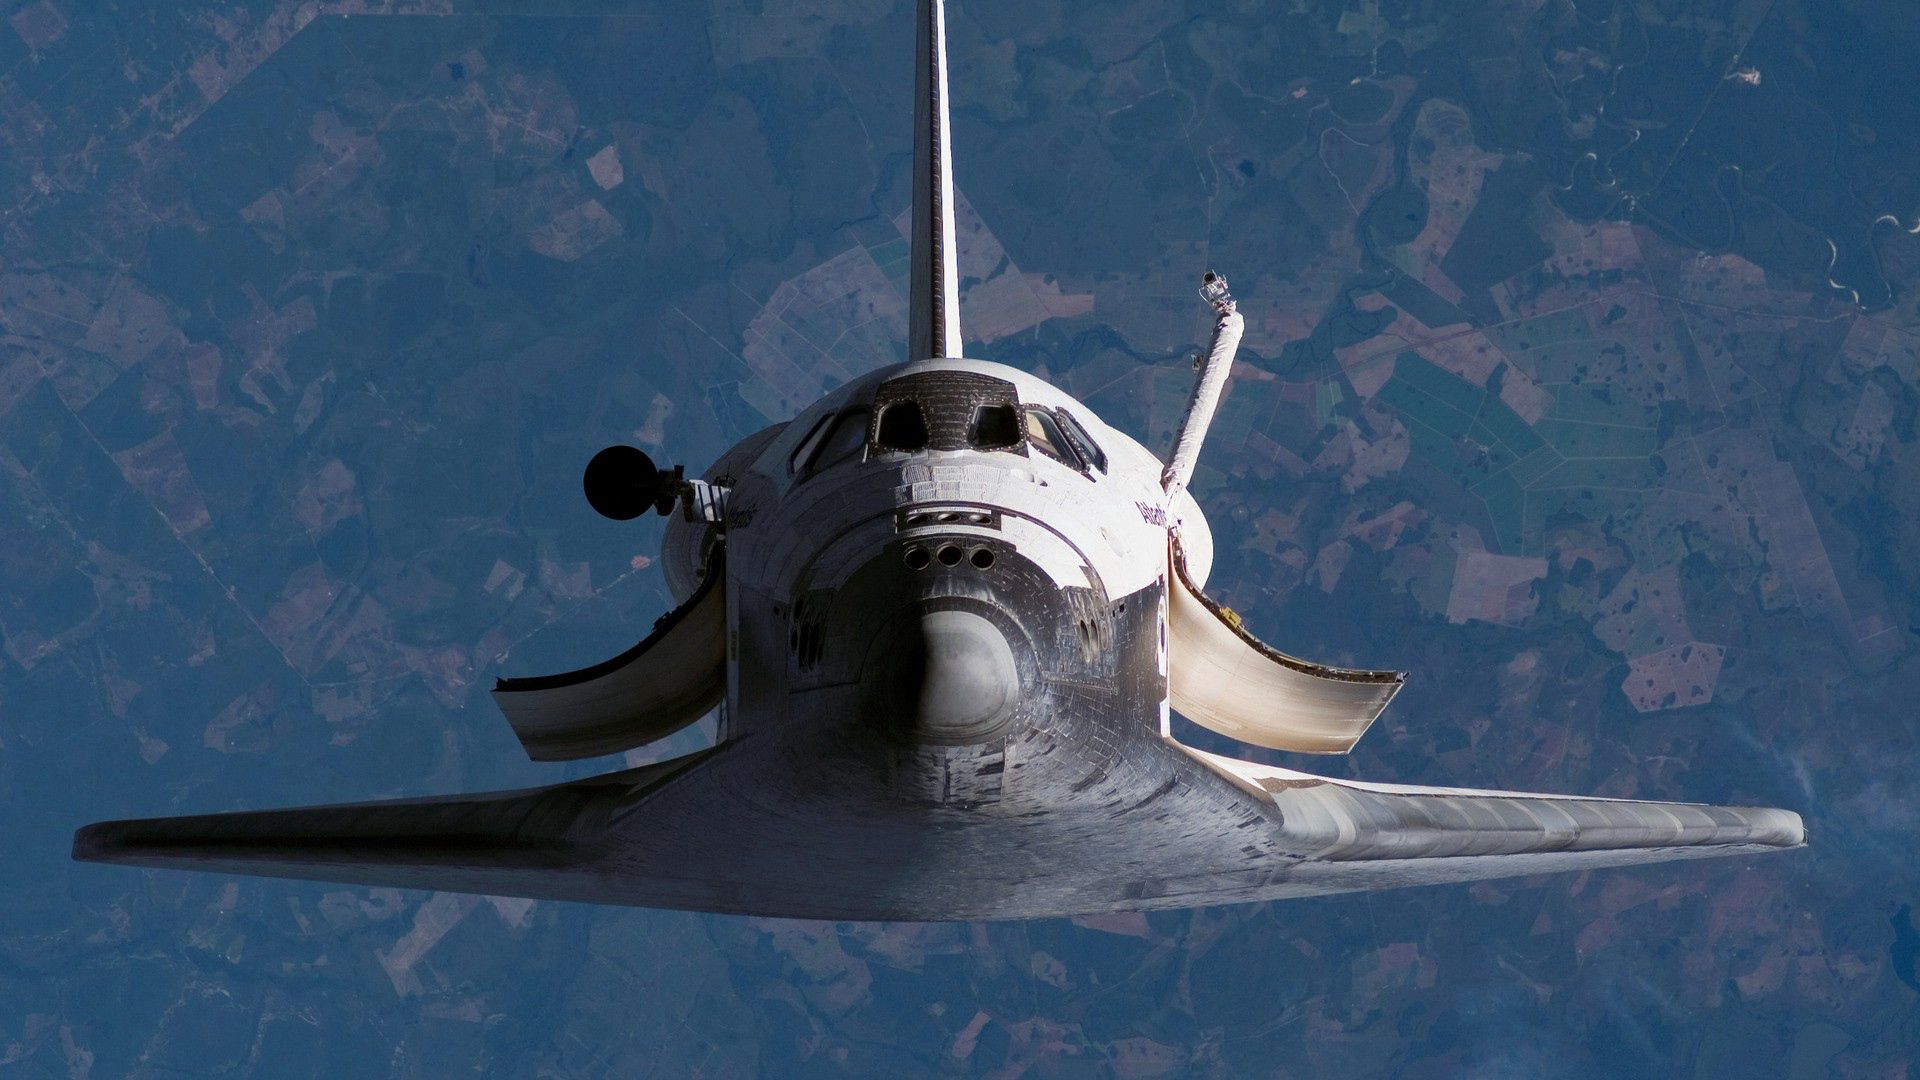 81829 download wallpaper Universe, Flight, Space, Rocket screensavers and pictures for free